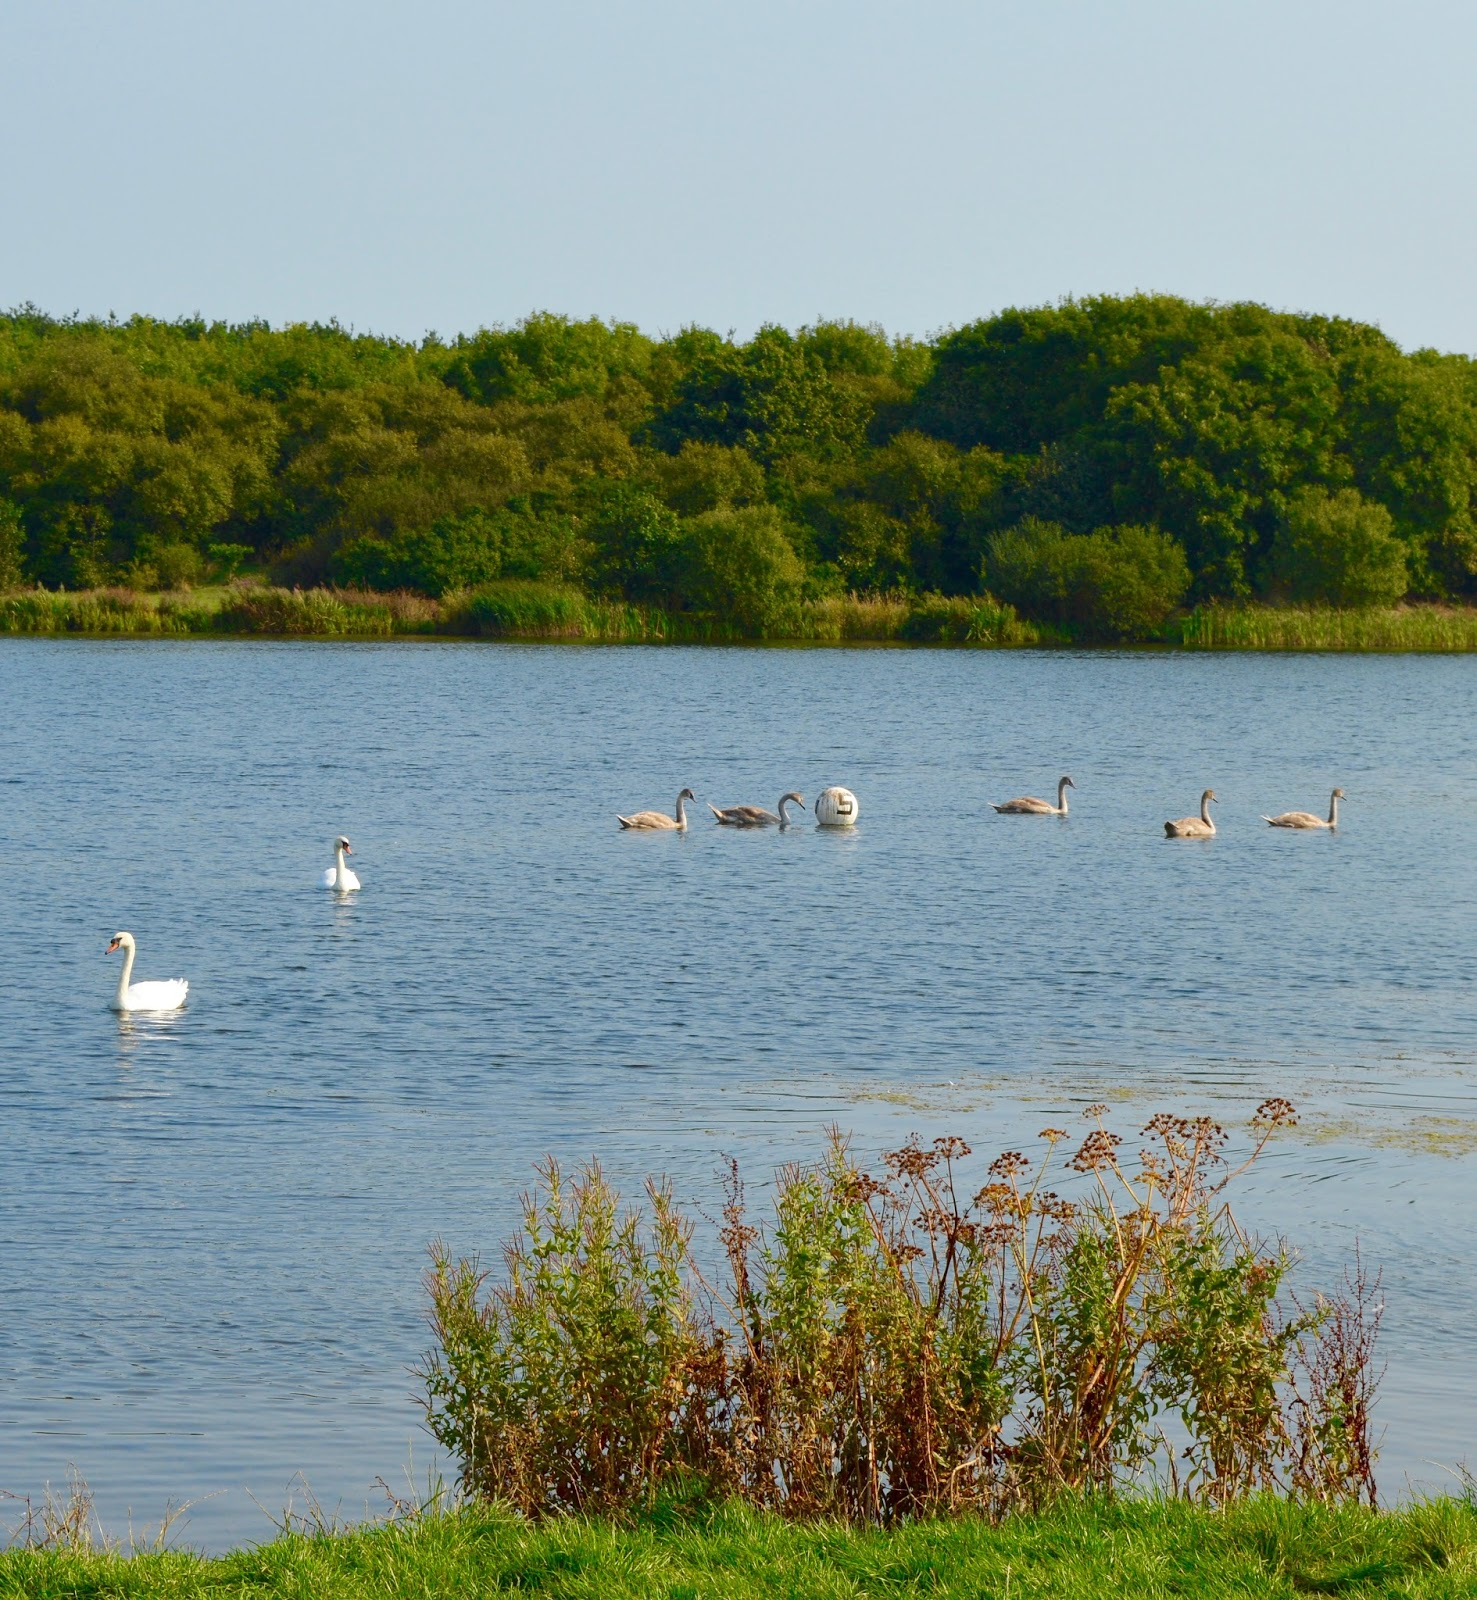 A walk around Ladyburn Lake at Druridge Bay Country Park | Northumberland - swans on lake